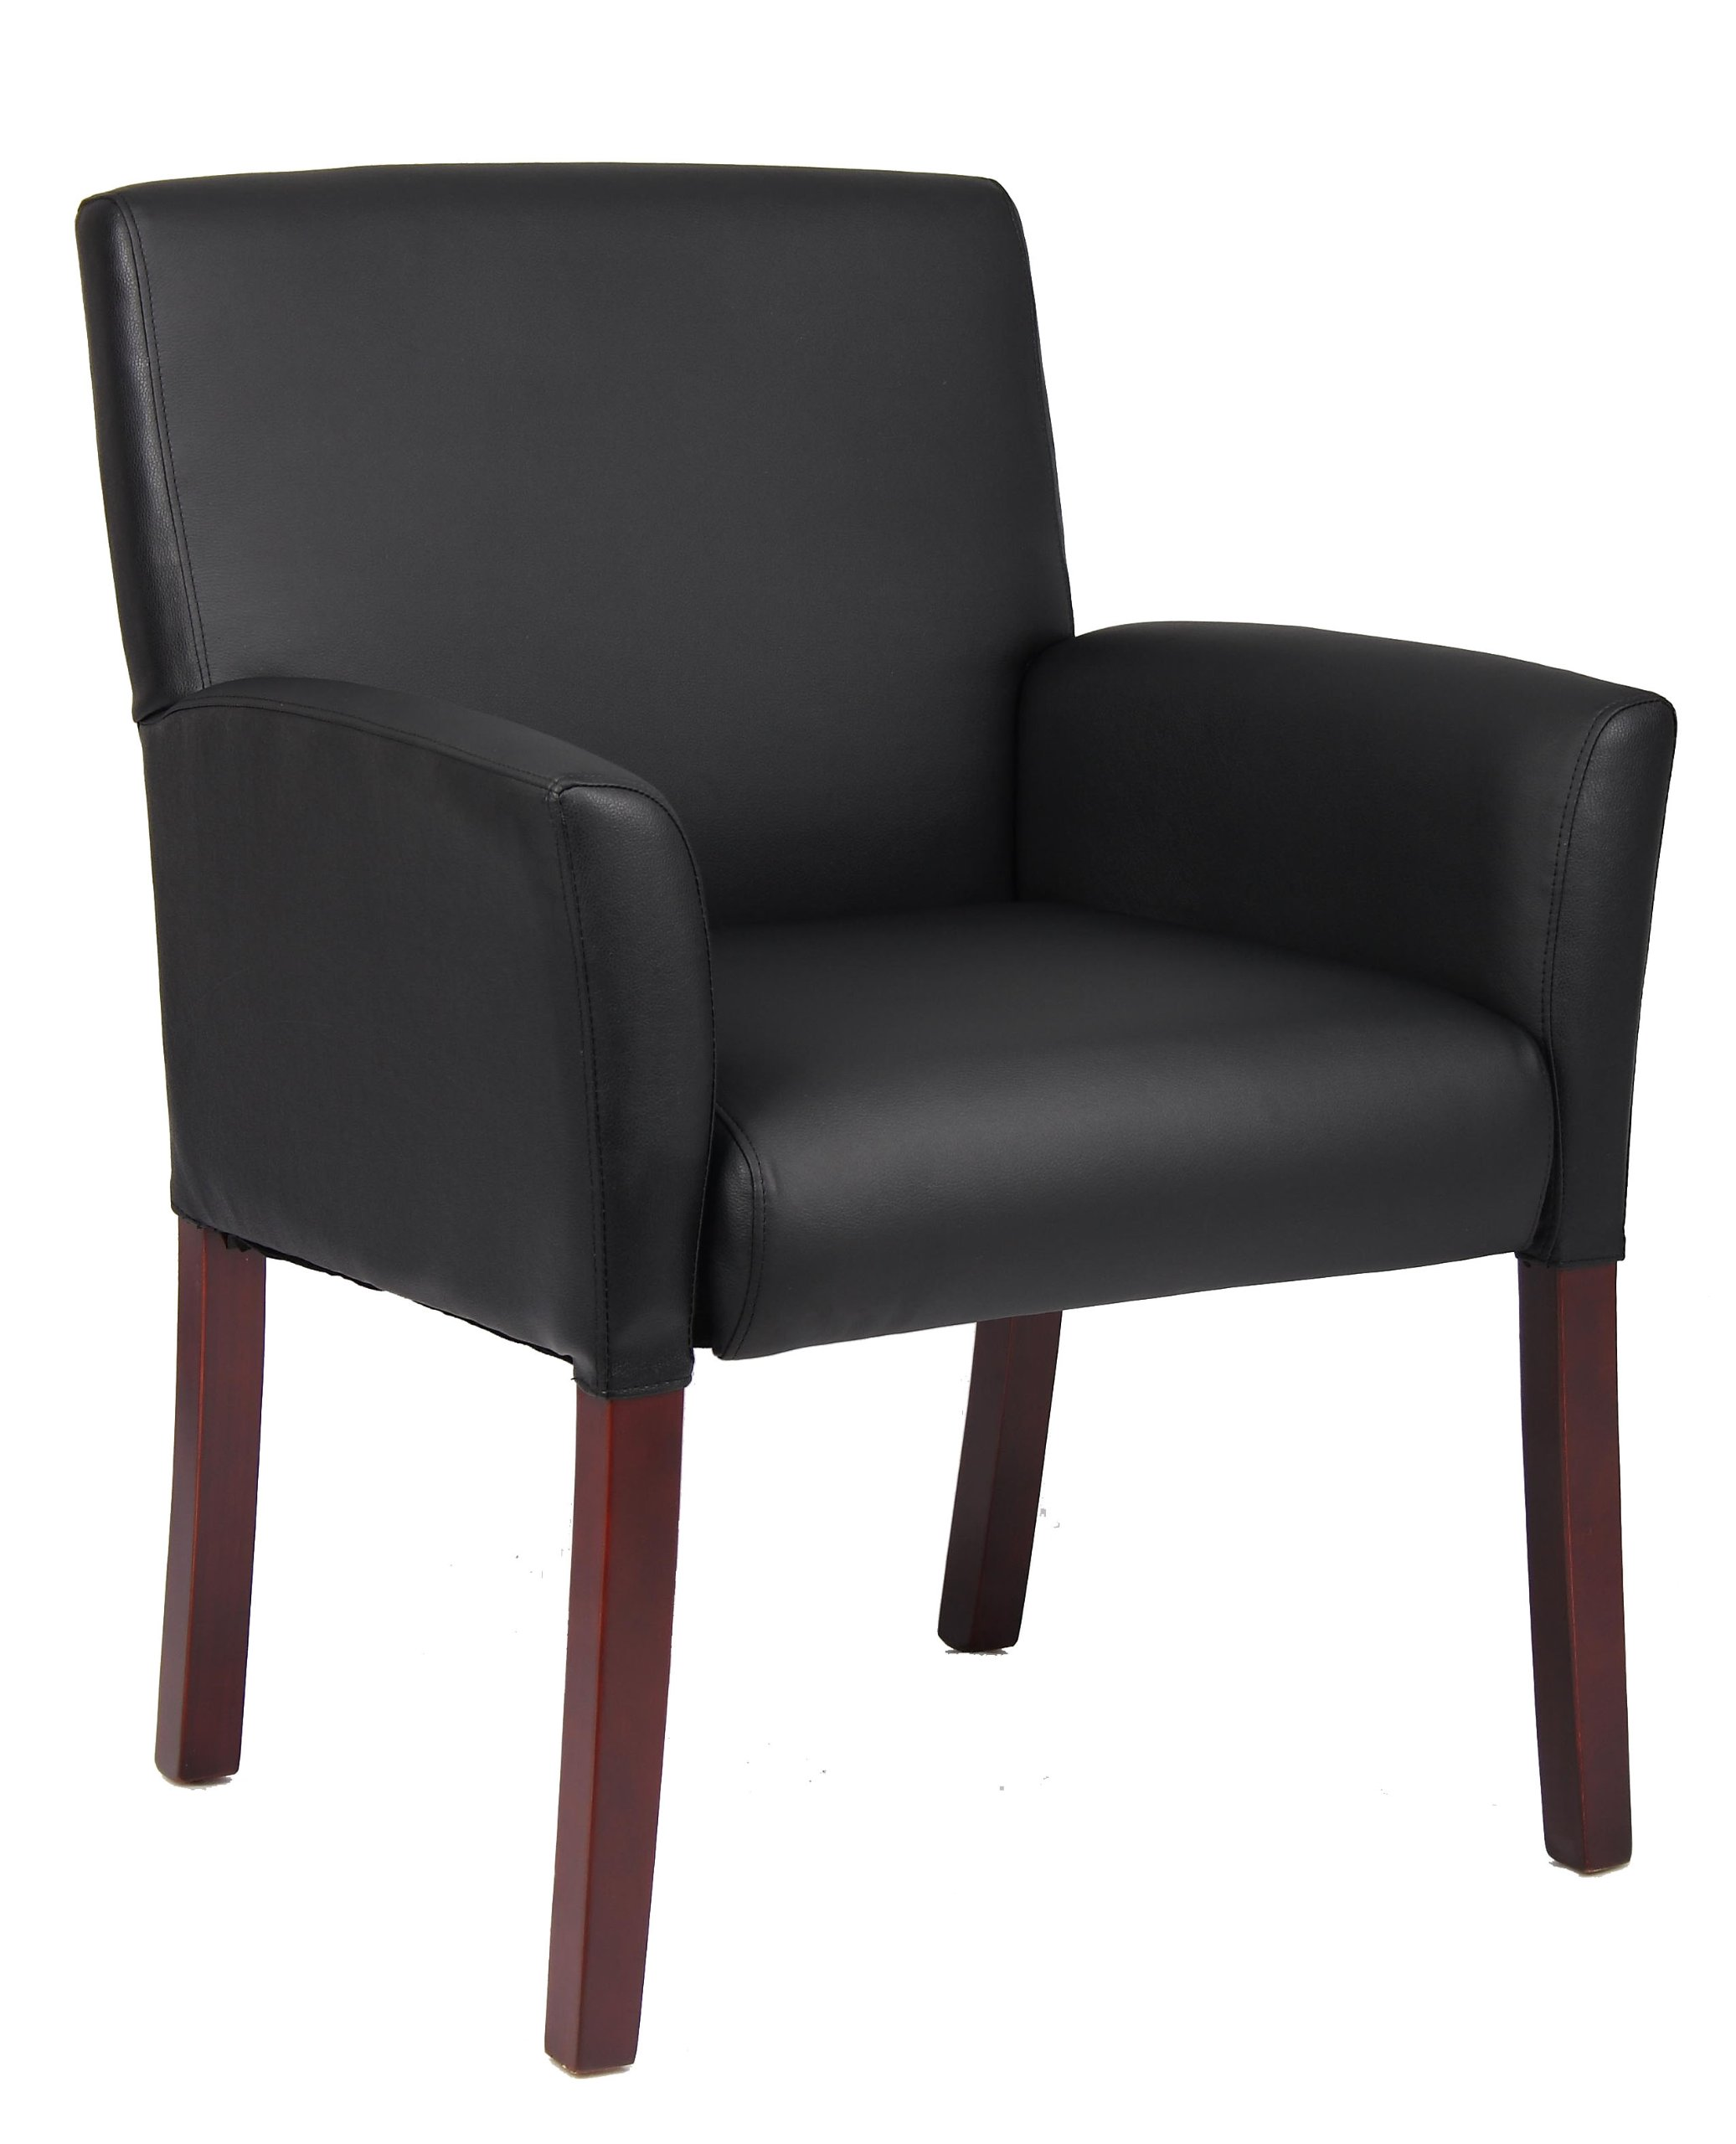 Boss Office Products B619 Box Arm Guest Chair with Mahogany Finish in Black by Boss Office Products